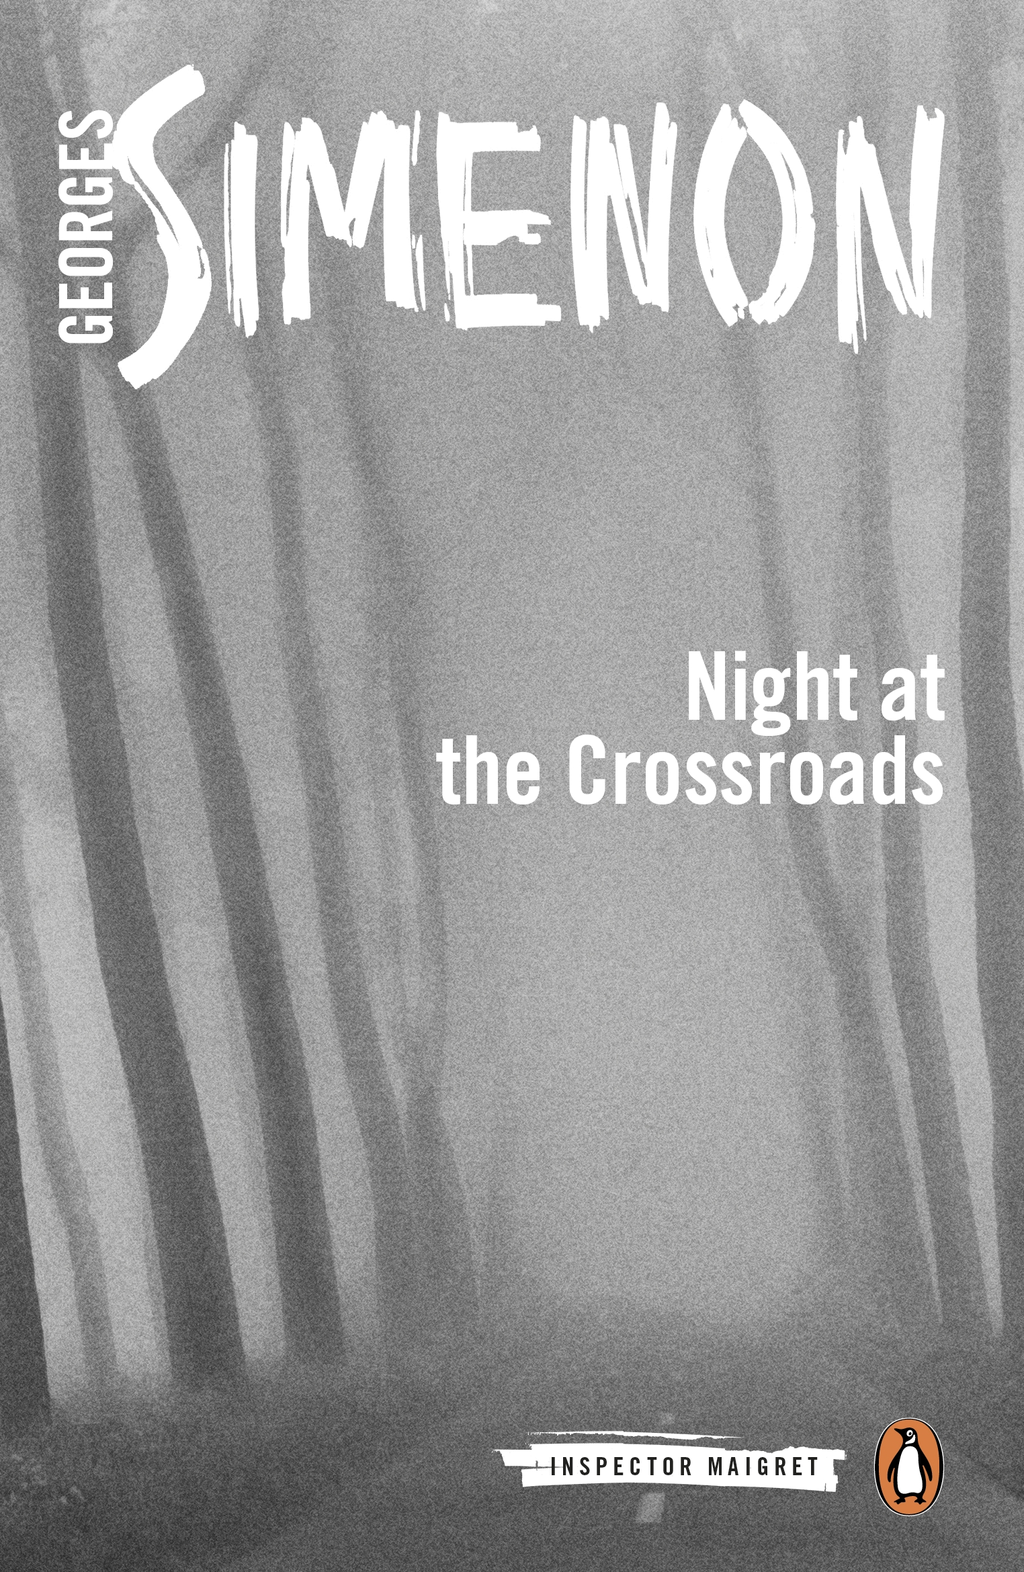 Night at the Crossroads Inspector Maigret #6